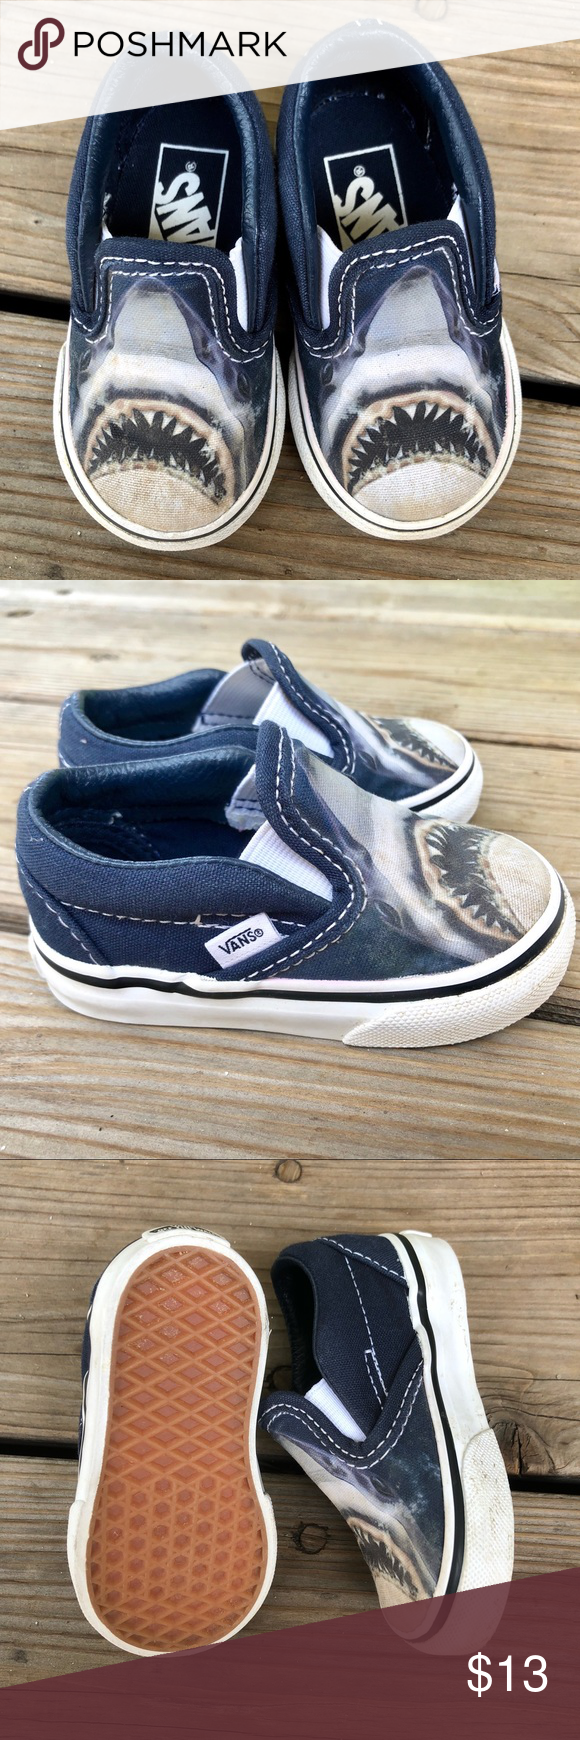 48ec5b971a7e Classic Vans Digi Shark Slip On Toddler Sz 4